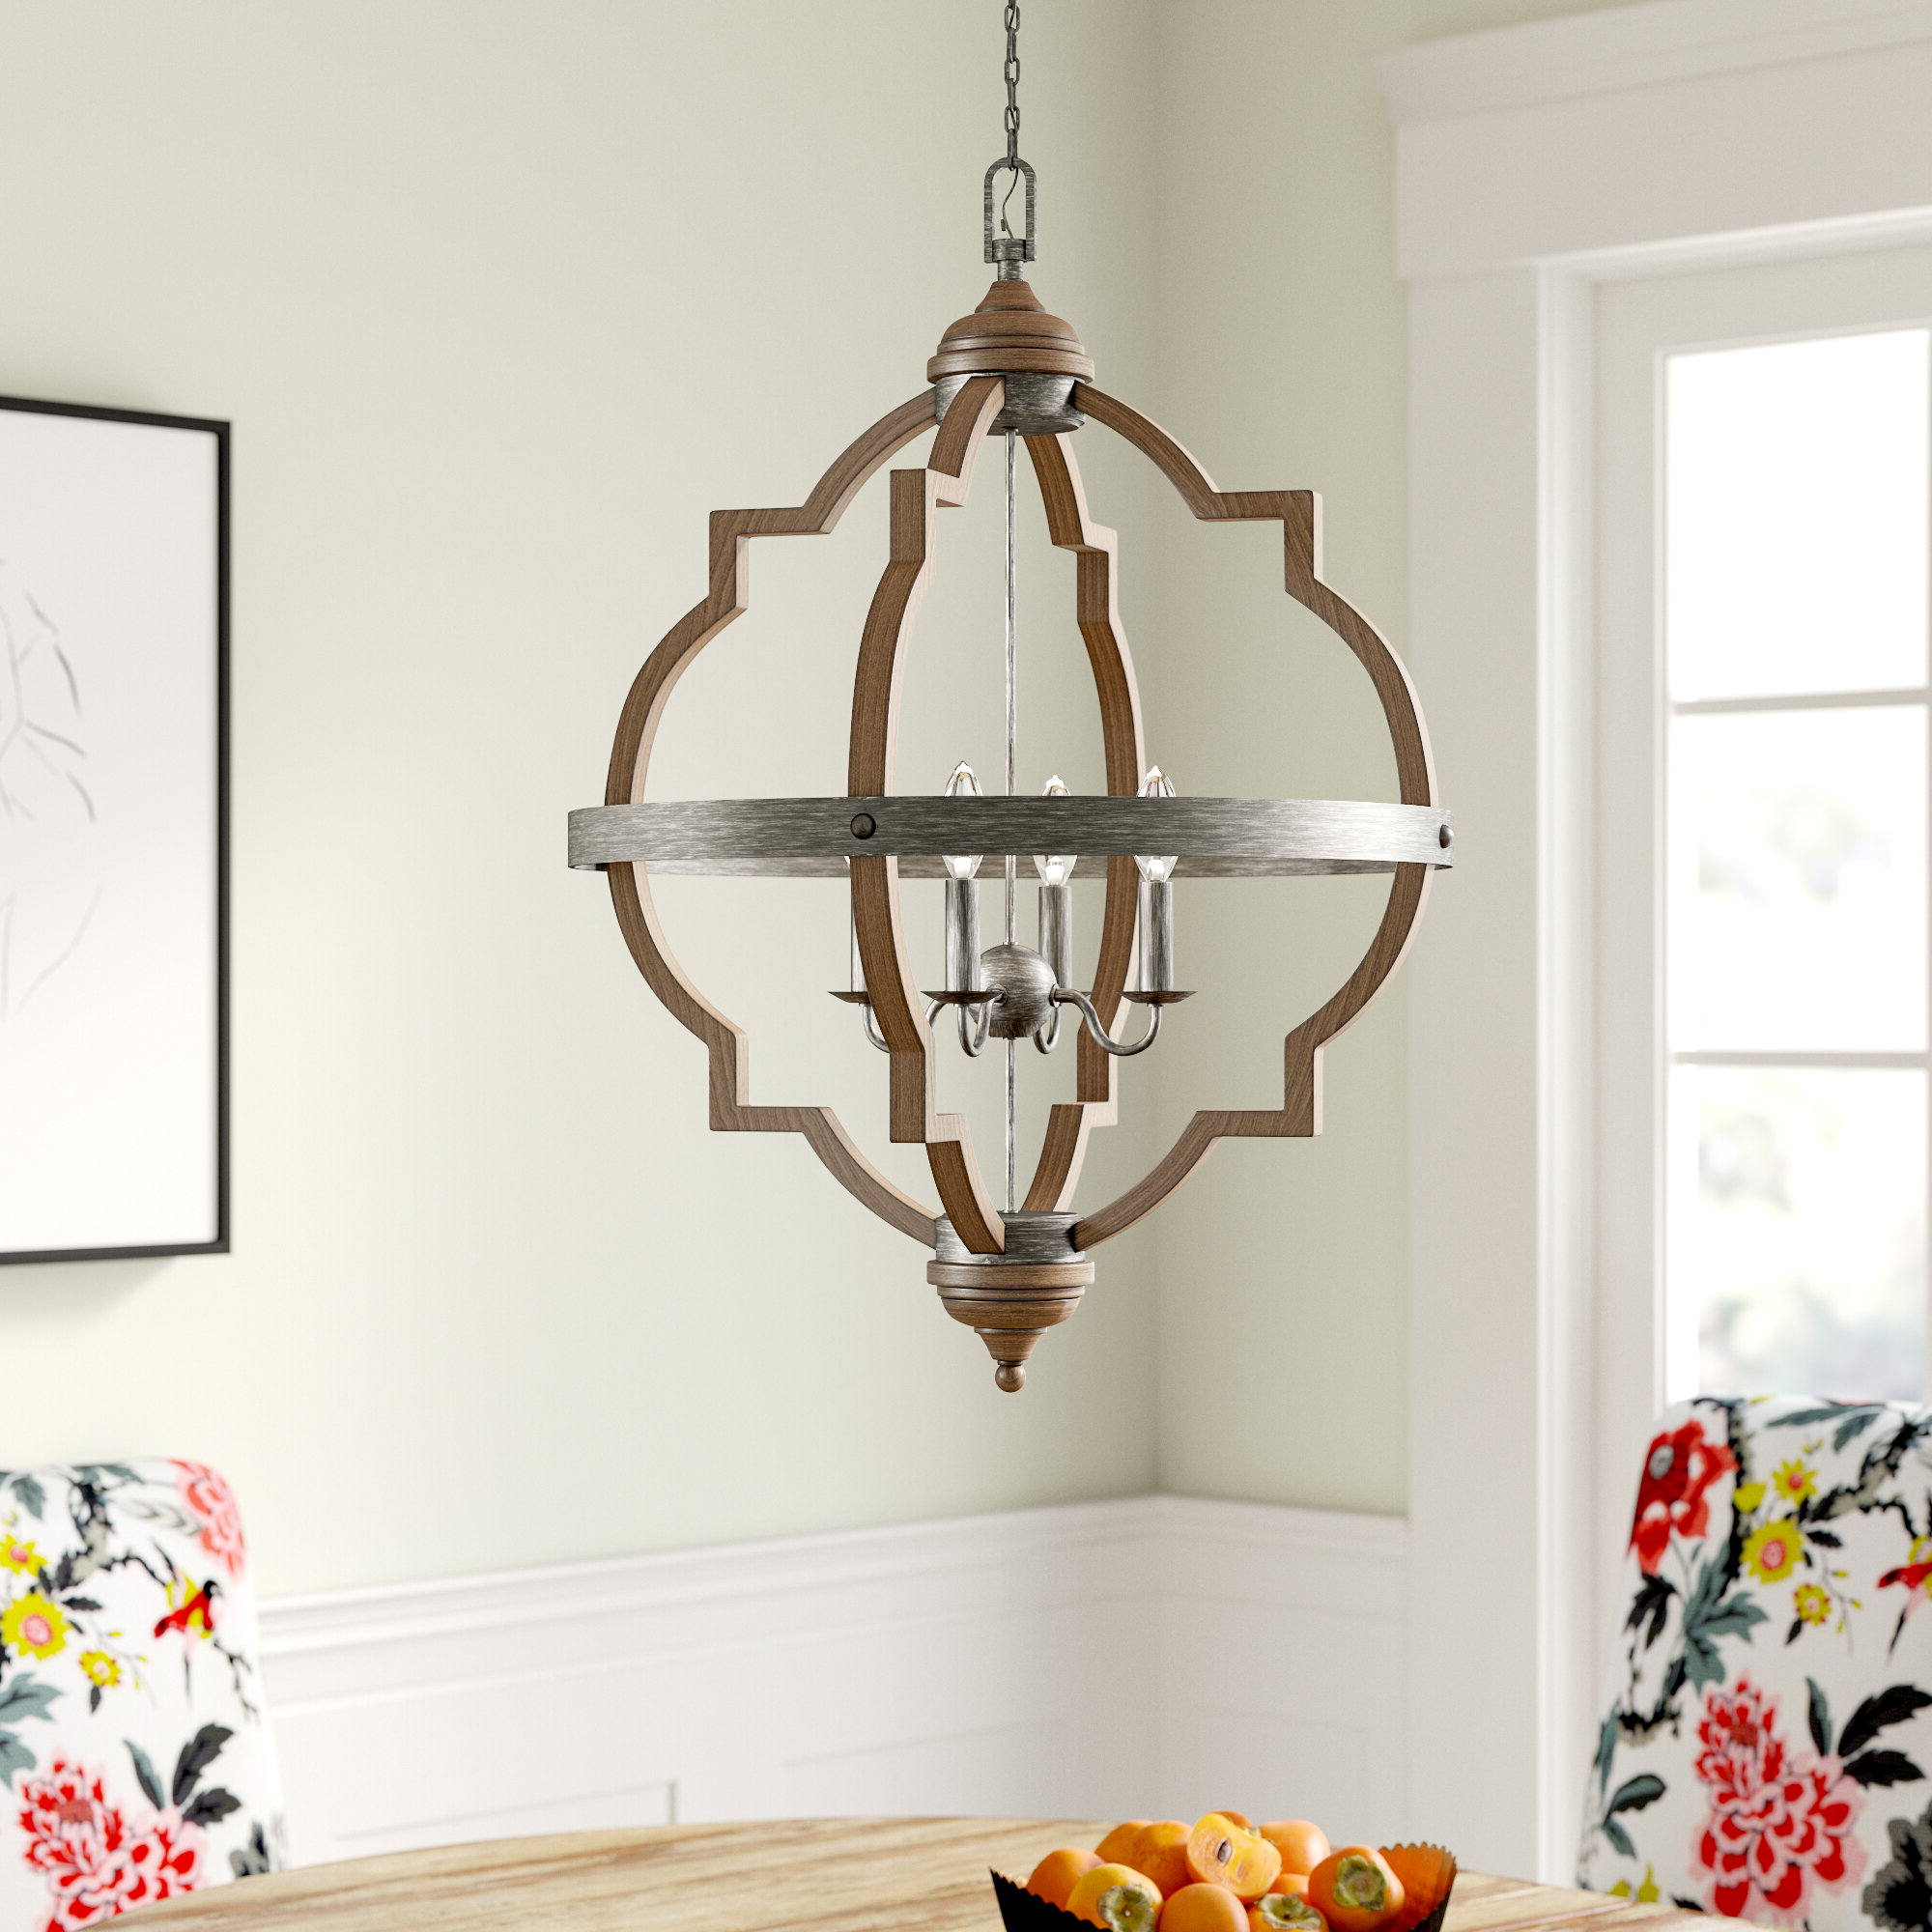 2019 Bennington 6 Light Candle Style Chandeliers Intended For Bennington 4 Light Candle Style Chandelier (Gallery 5 of 20)